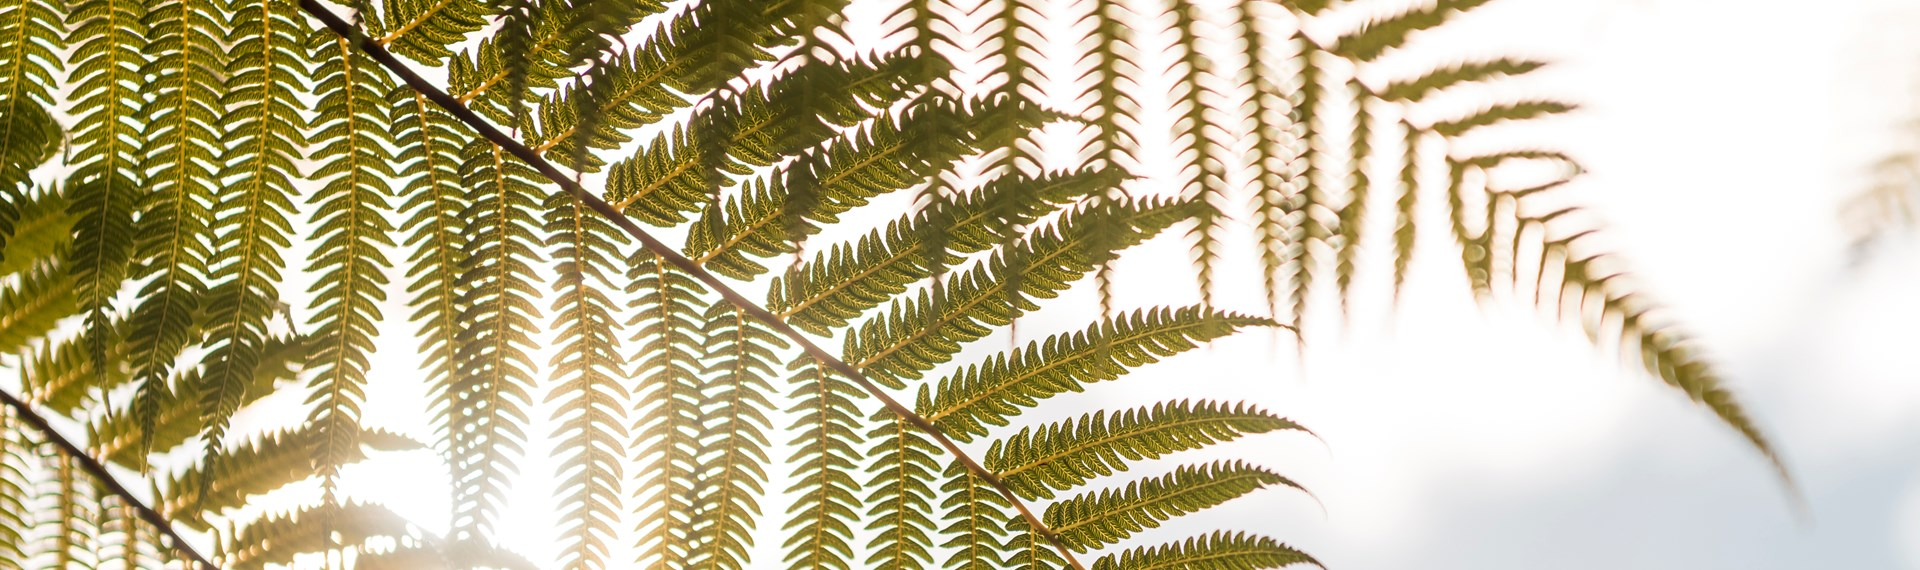 Native fern frond in the sun, Marlborough Sounds, New Zealand